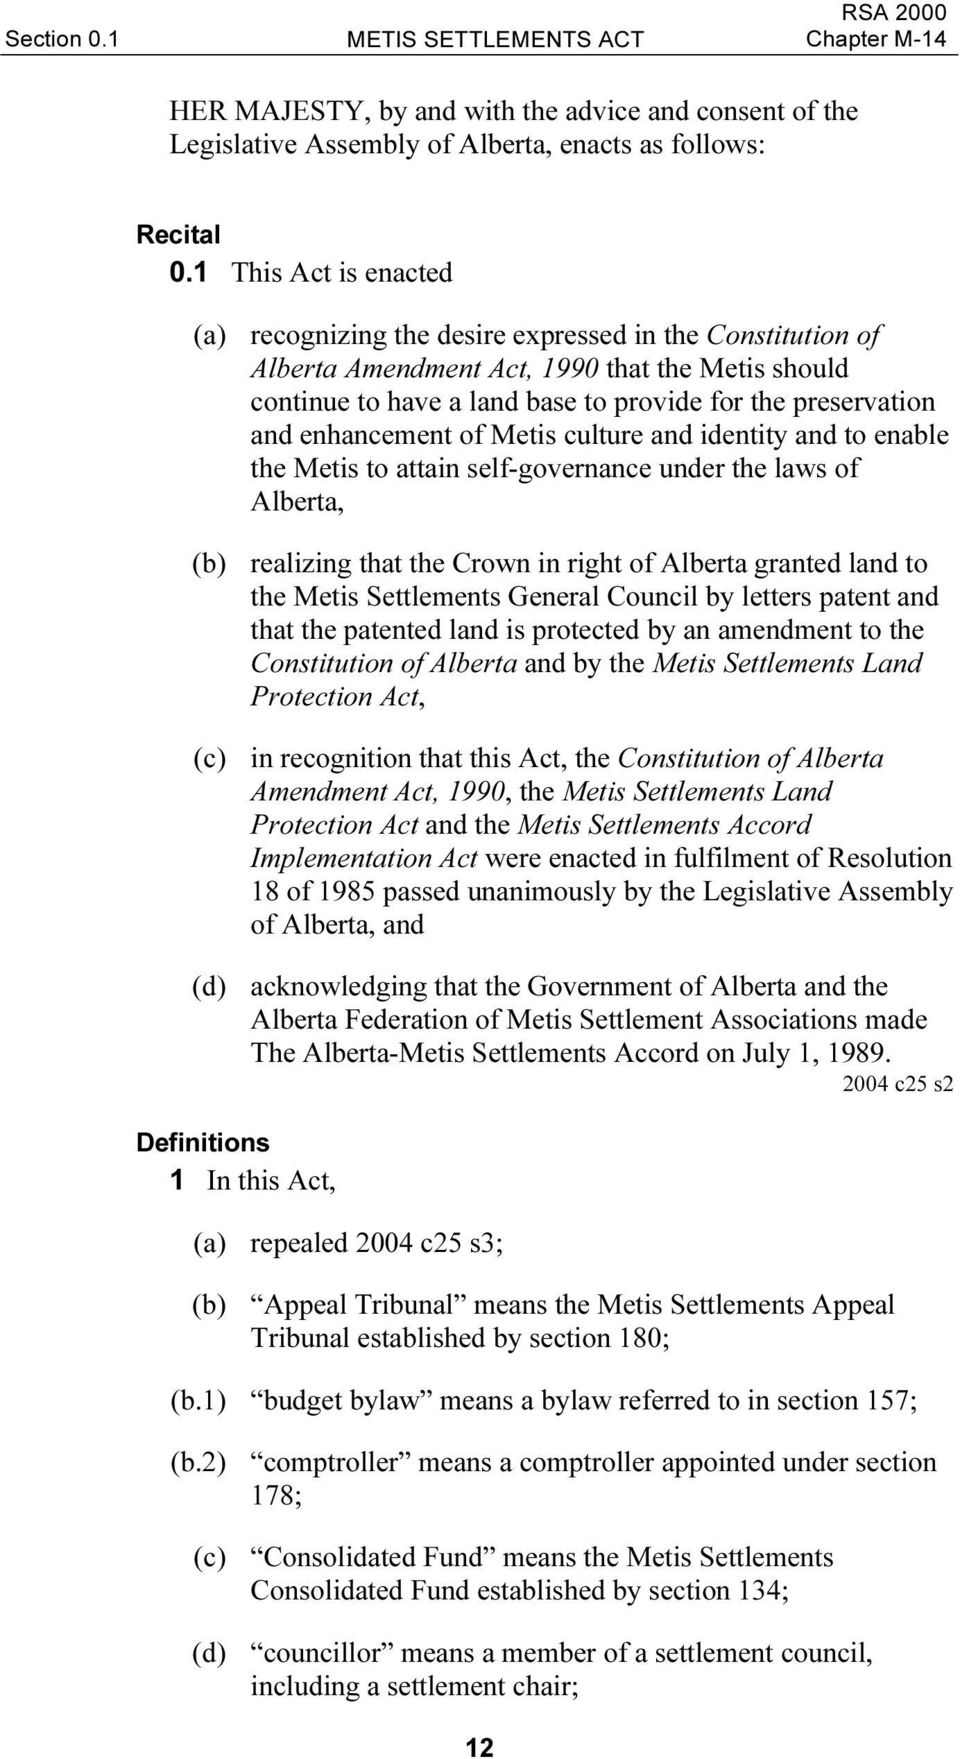 enhancement of Metis culture and identity and to enable the Metis to attain self-governance under the laws of Alberta, (b) realizing that the Crown in right of Alberta granted land to the Metis